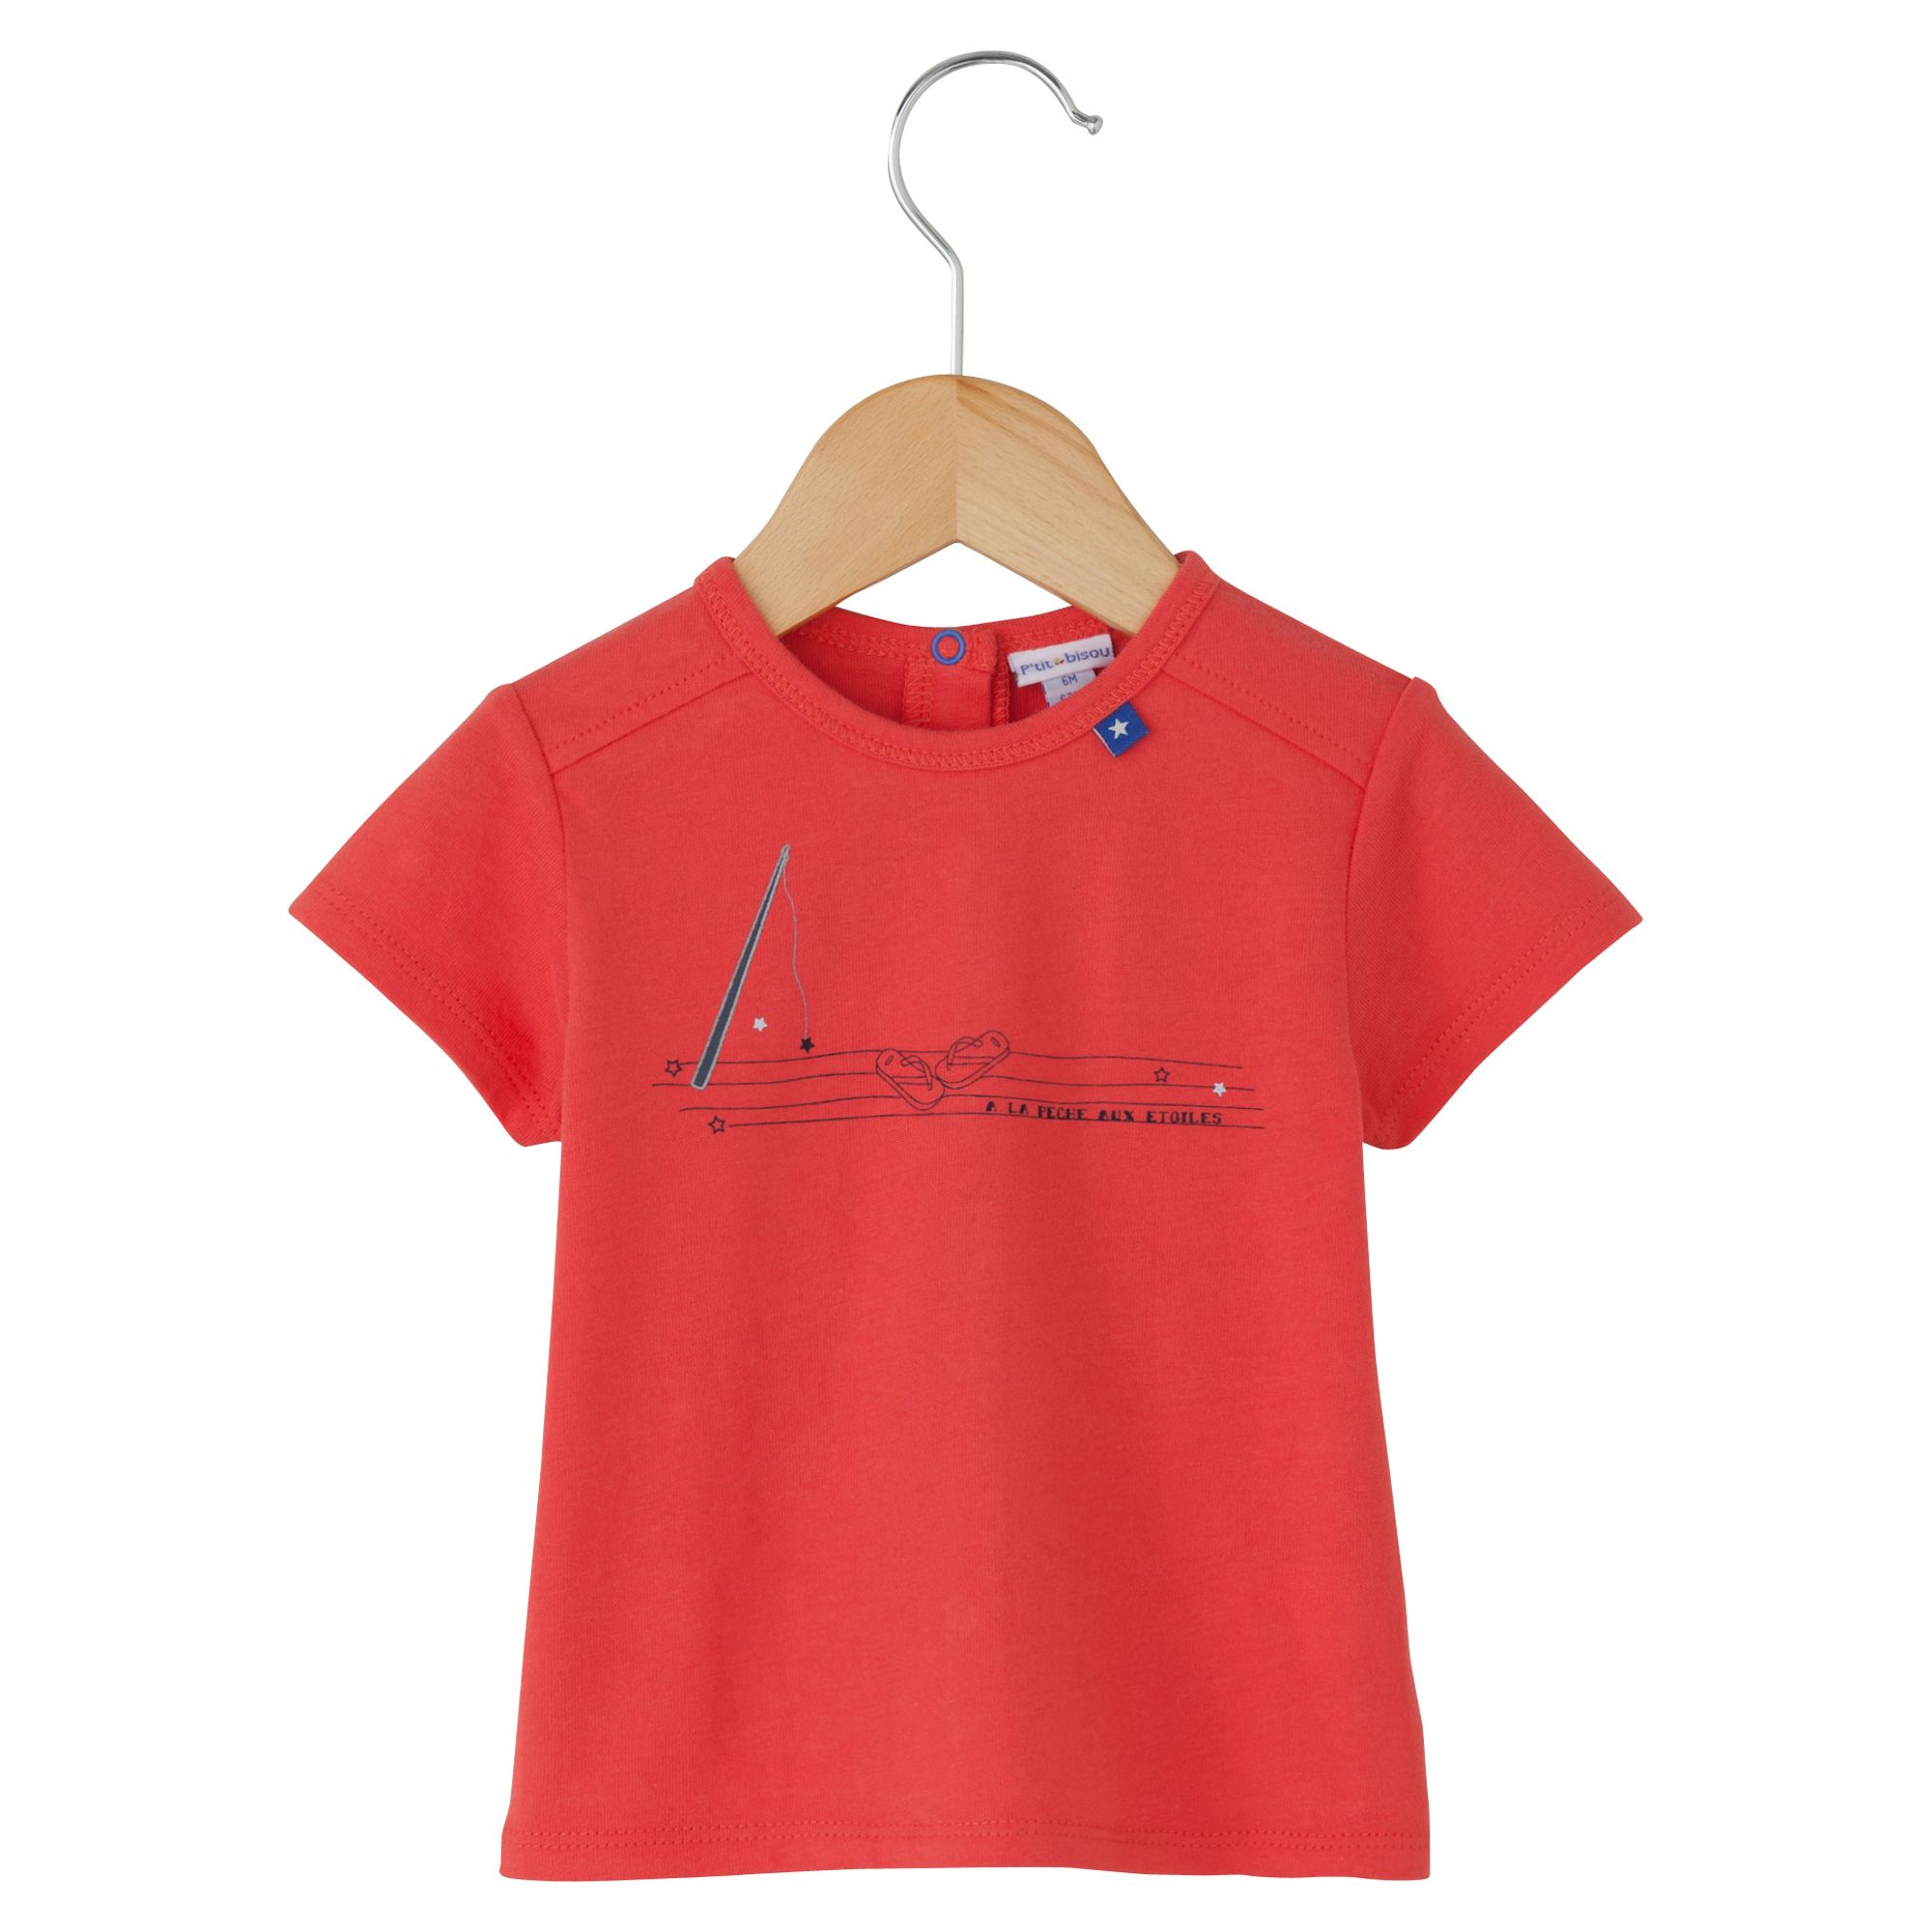 T-shirt collection Little Navy Rouge 6 mois de P'tit bisou